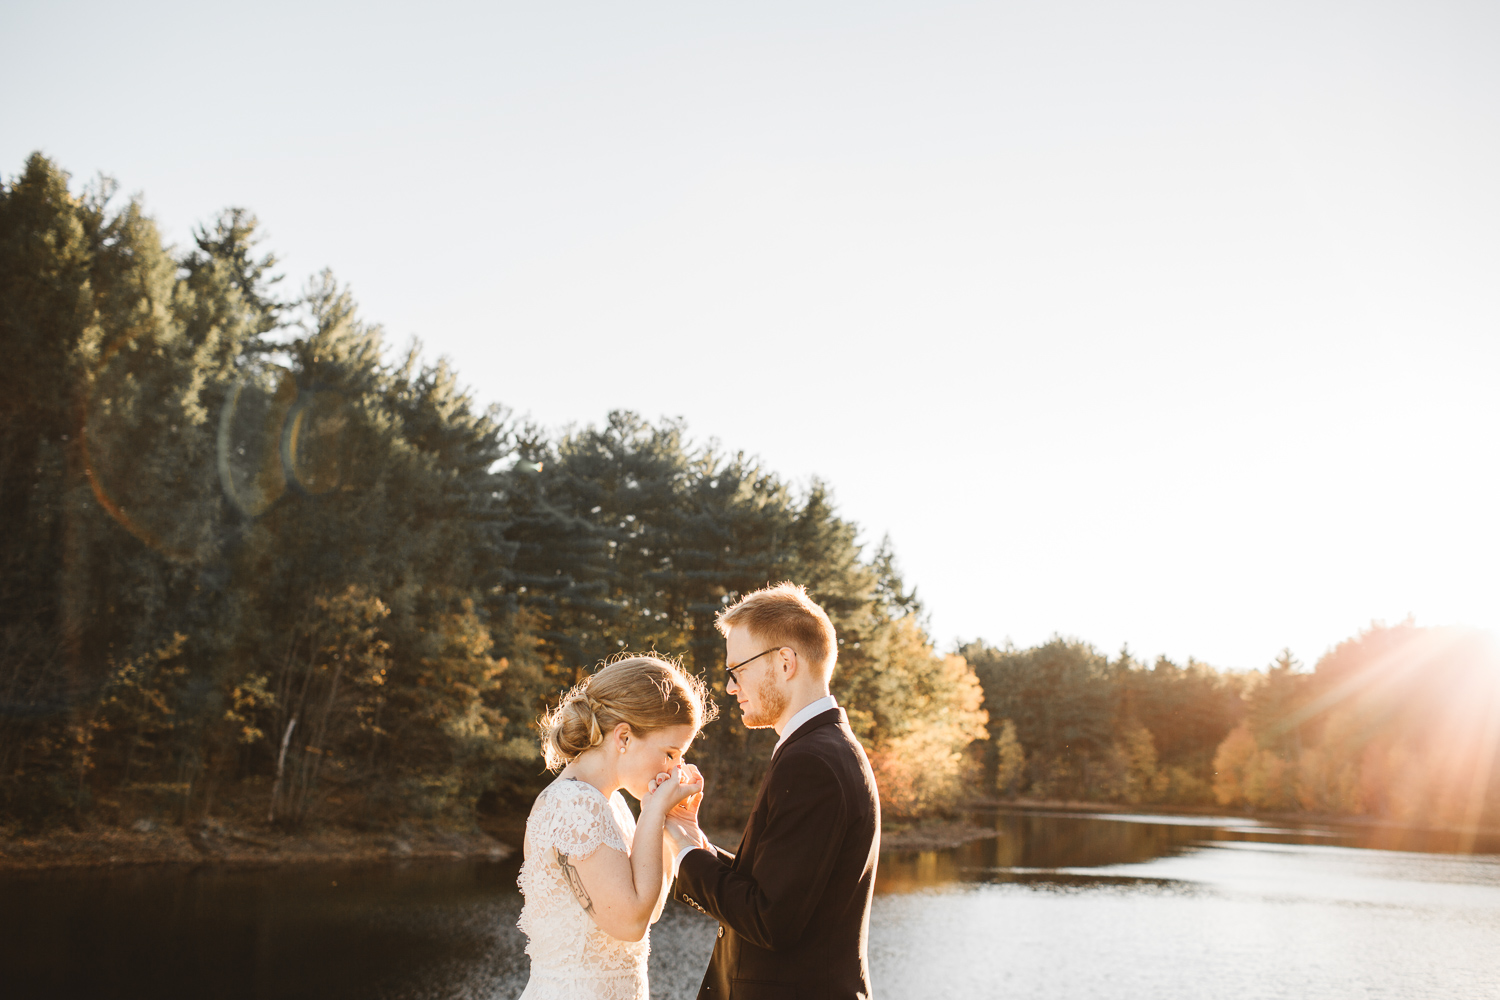 Boston-Elopement-Style-Wedding-Ceremony-Anthropologie-Photographer-Madly-08.jpg